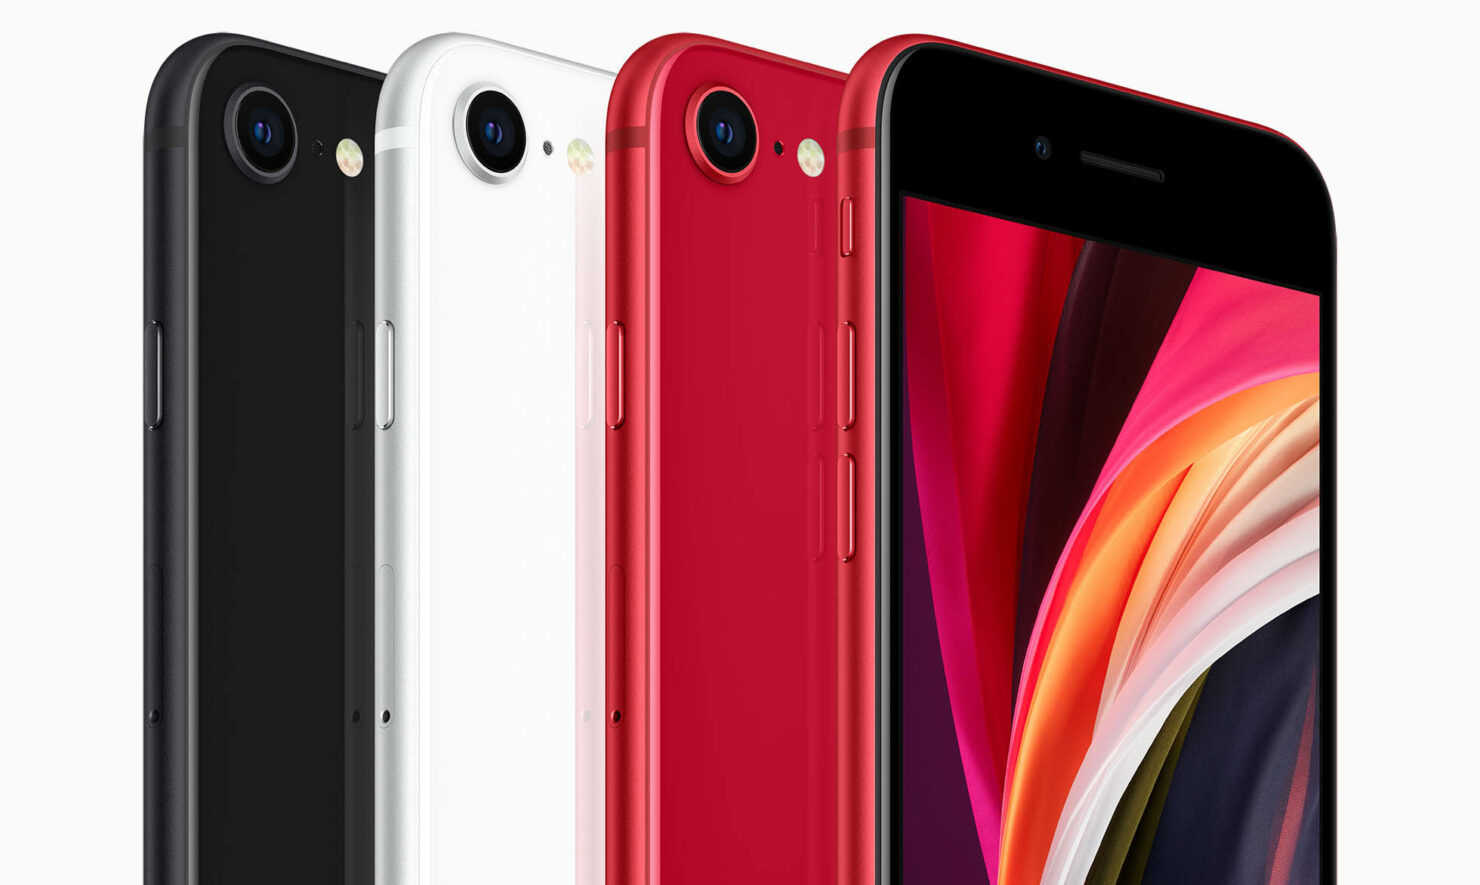 iPhone SE Features the Best Wireless Standards for a non-5G Handset - Wi-Fi 6 and Gigabit LTE Support Added